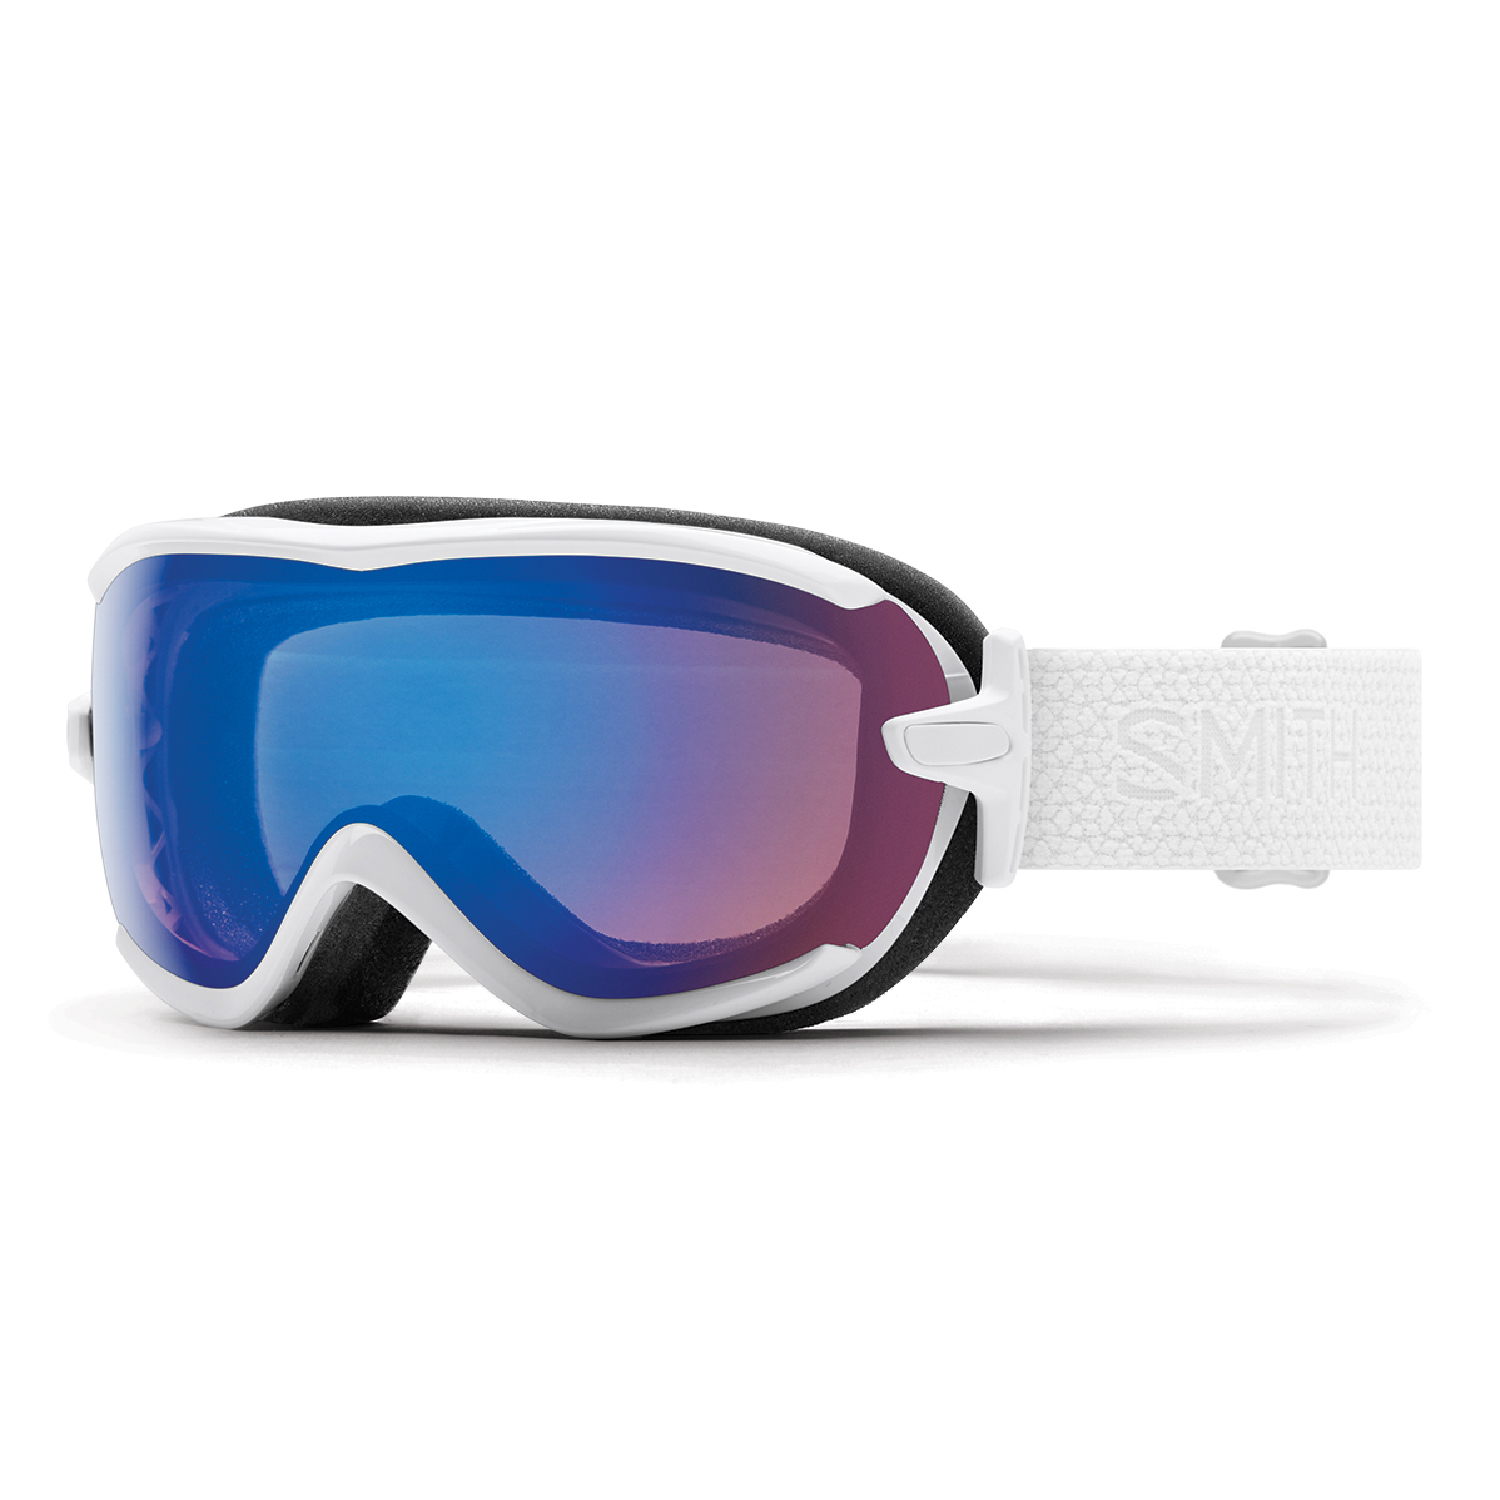 Smith Optics 2018 Virtue (White Mosaic ChromaPop Storm Rose Flash) Women's Snowboard Goggles by